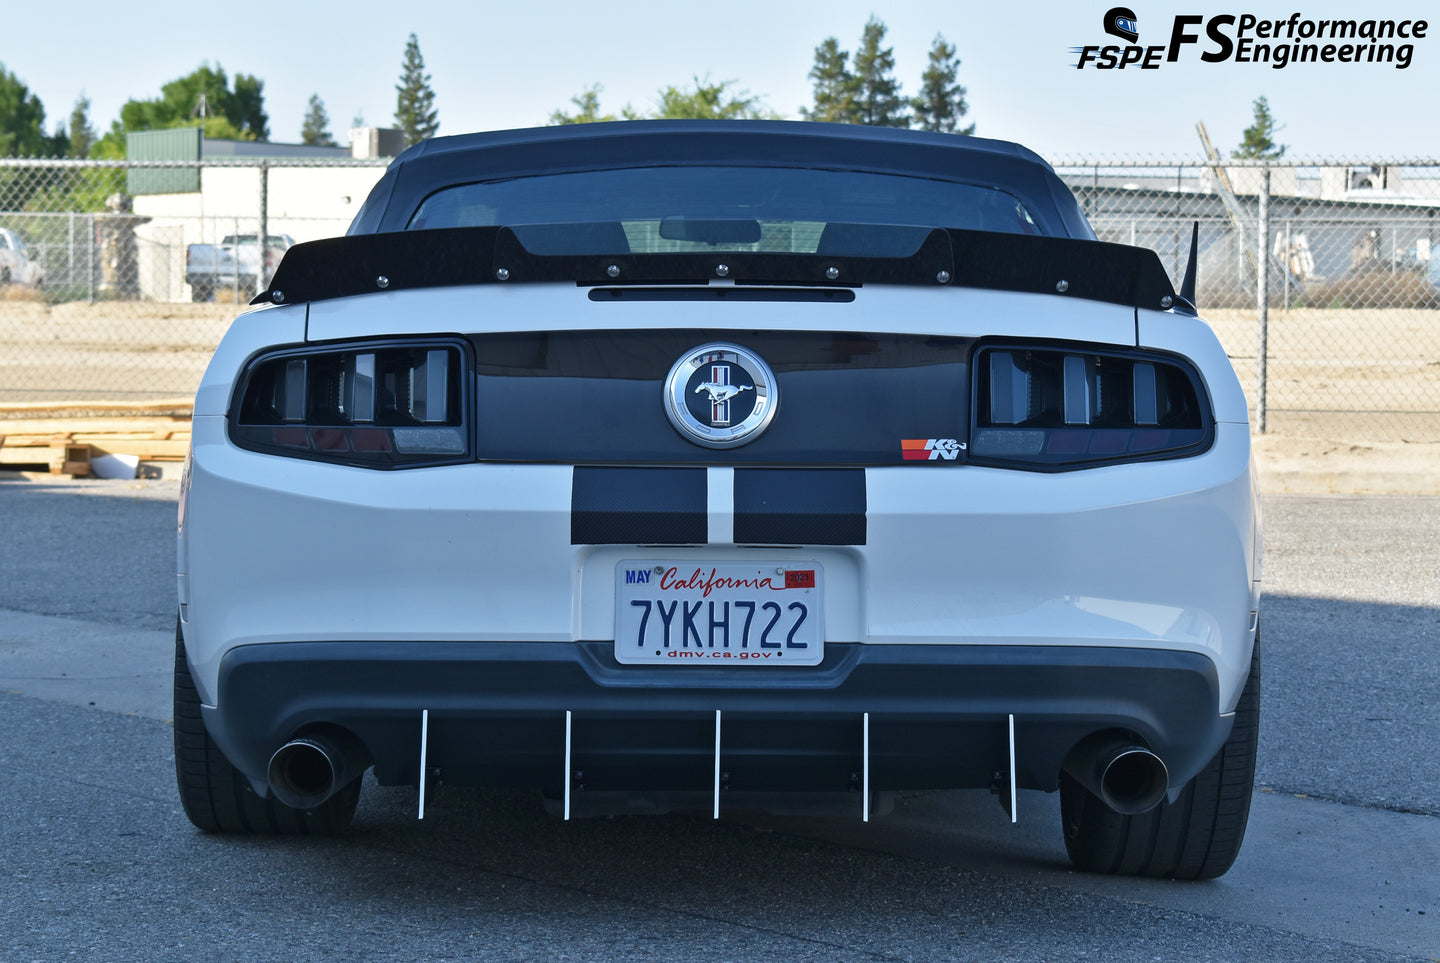 Ford Mustang Aerodynamics Collections Page - Splitter, Side Skirts, Rear Diffuser, Canards, Spoiler, Wickerbill